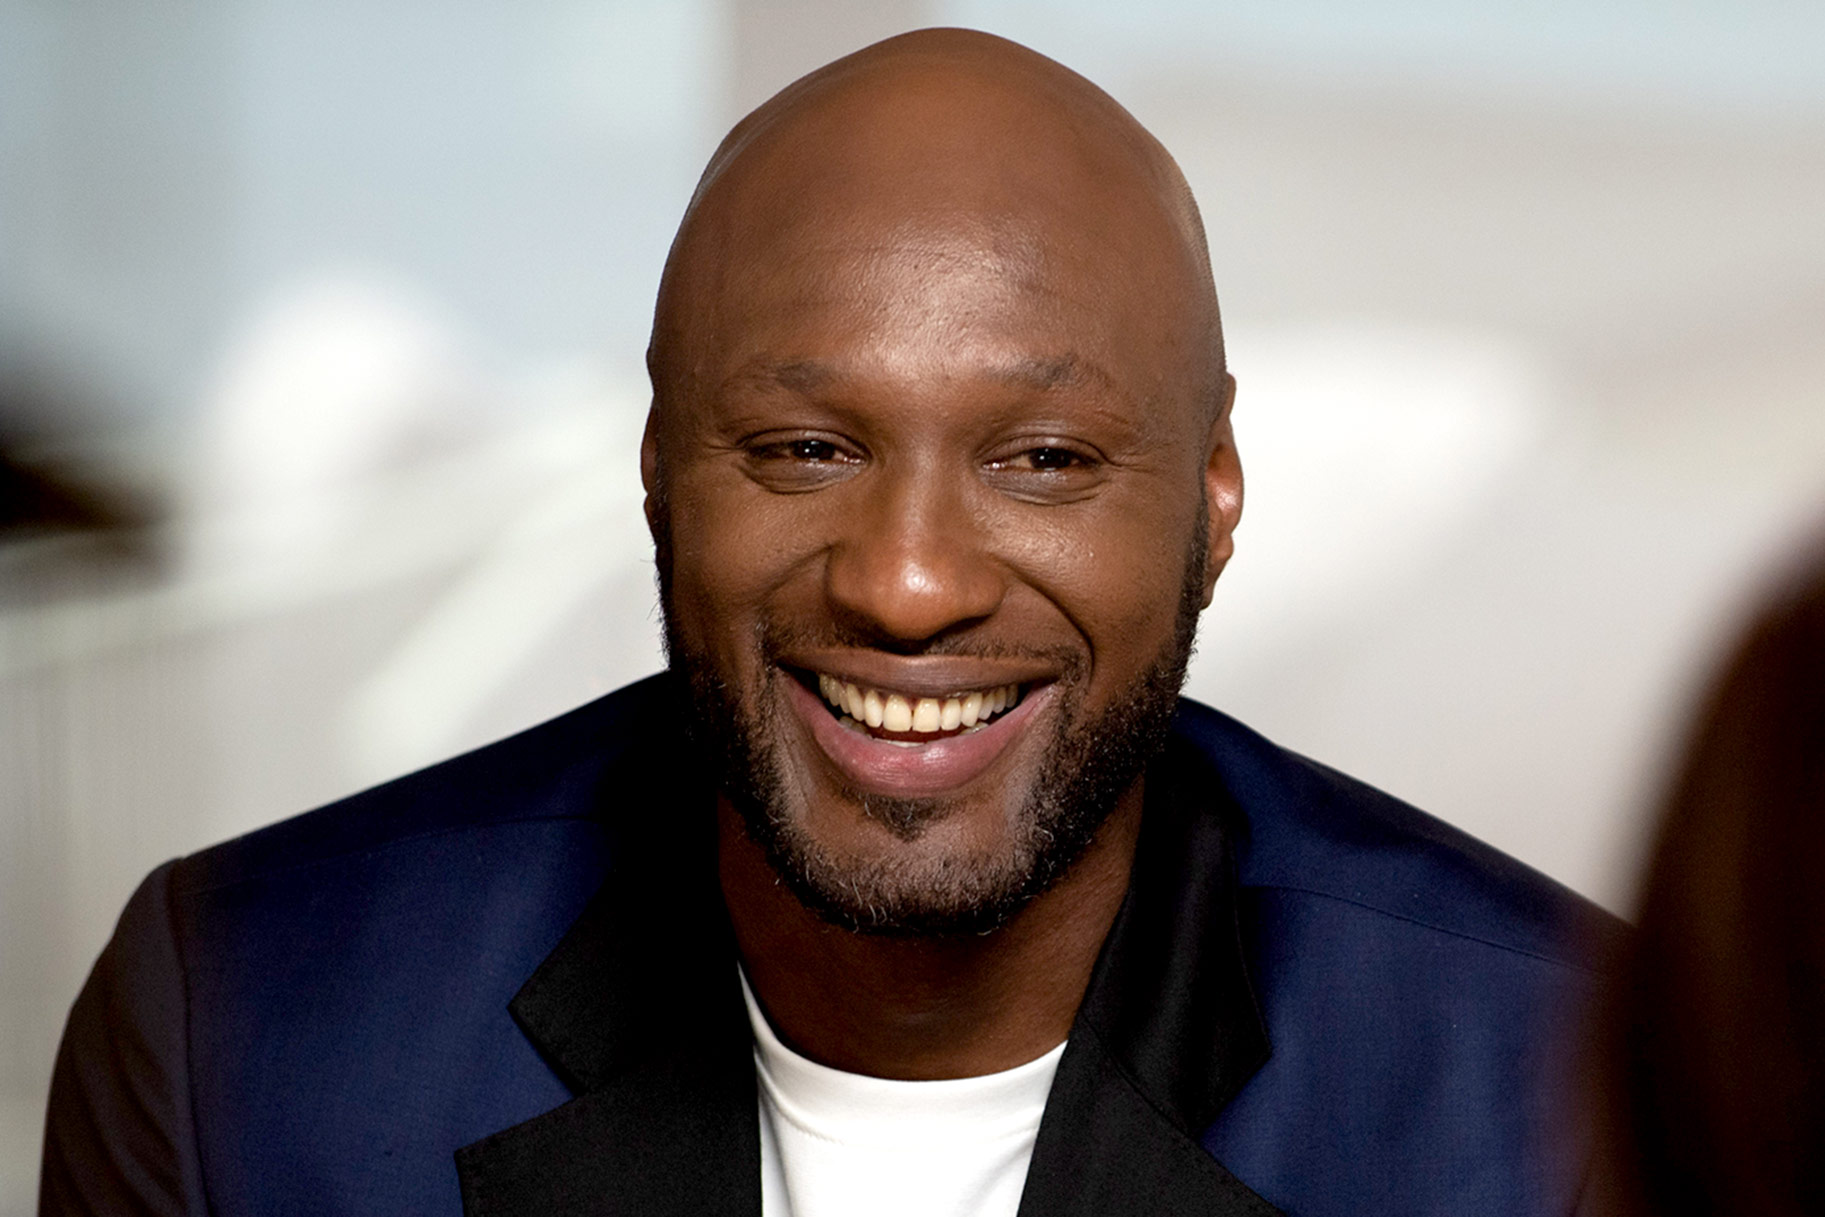 Lamar Odom Shows Off His New Girlfriend, Sabrina Parr - See The Photo